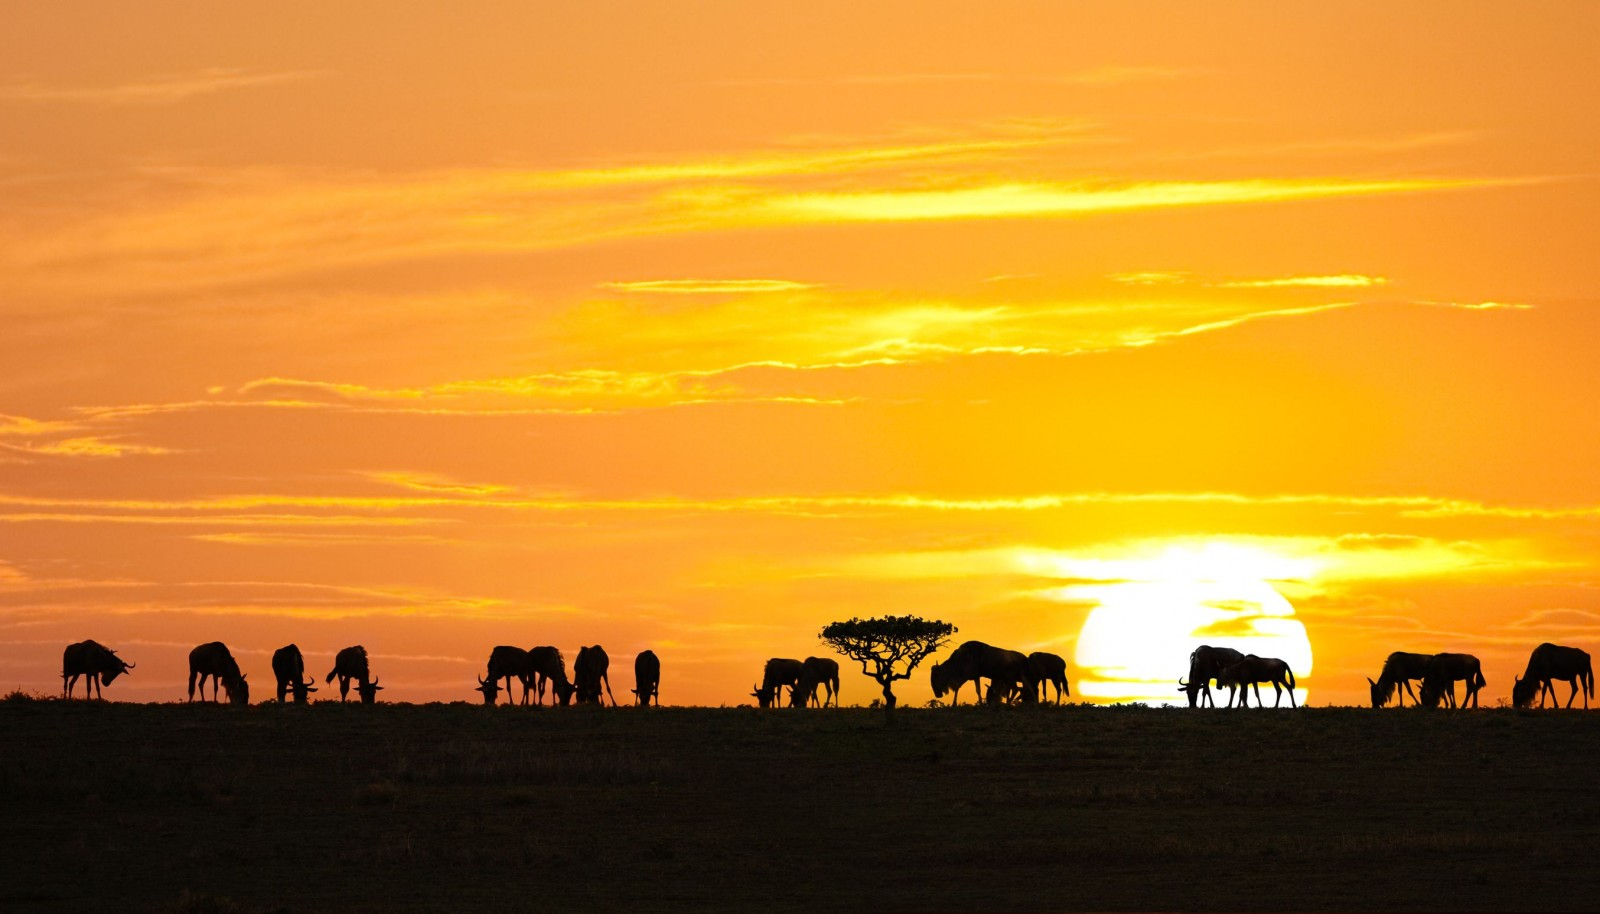 http://www.getintravel.com/adventure-travel-to-serengeti-national-park-tanzania/